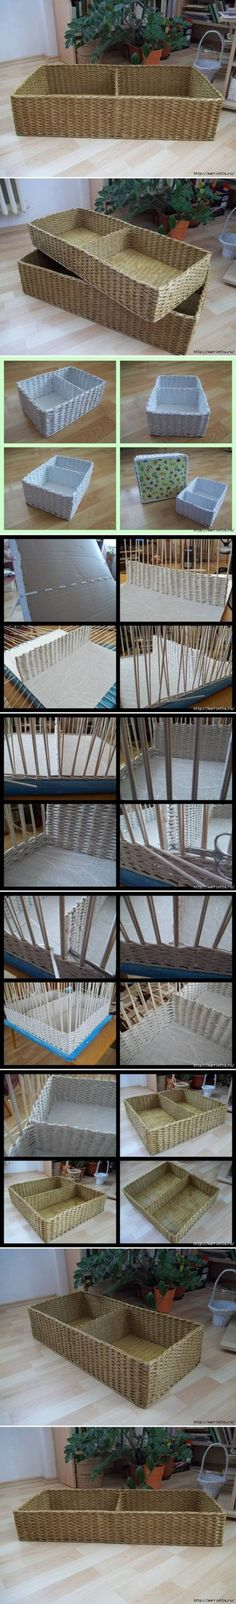 How to make storage baskets with Newspaper step by step...